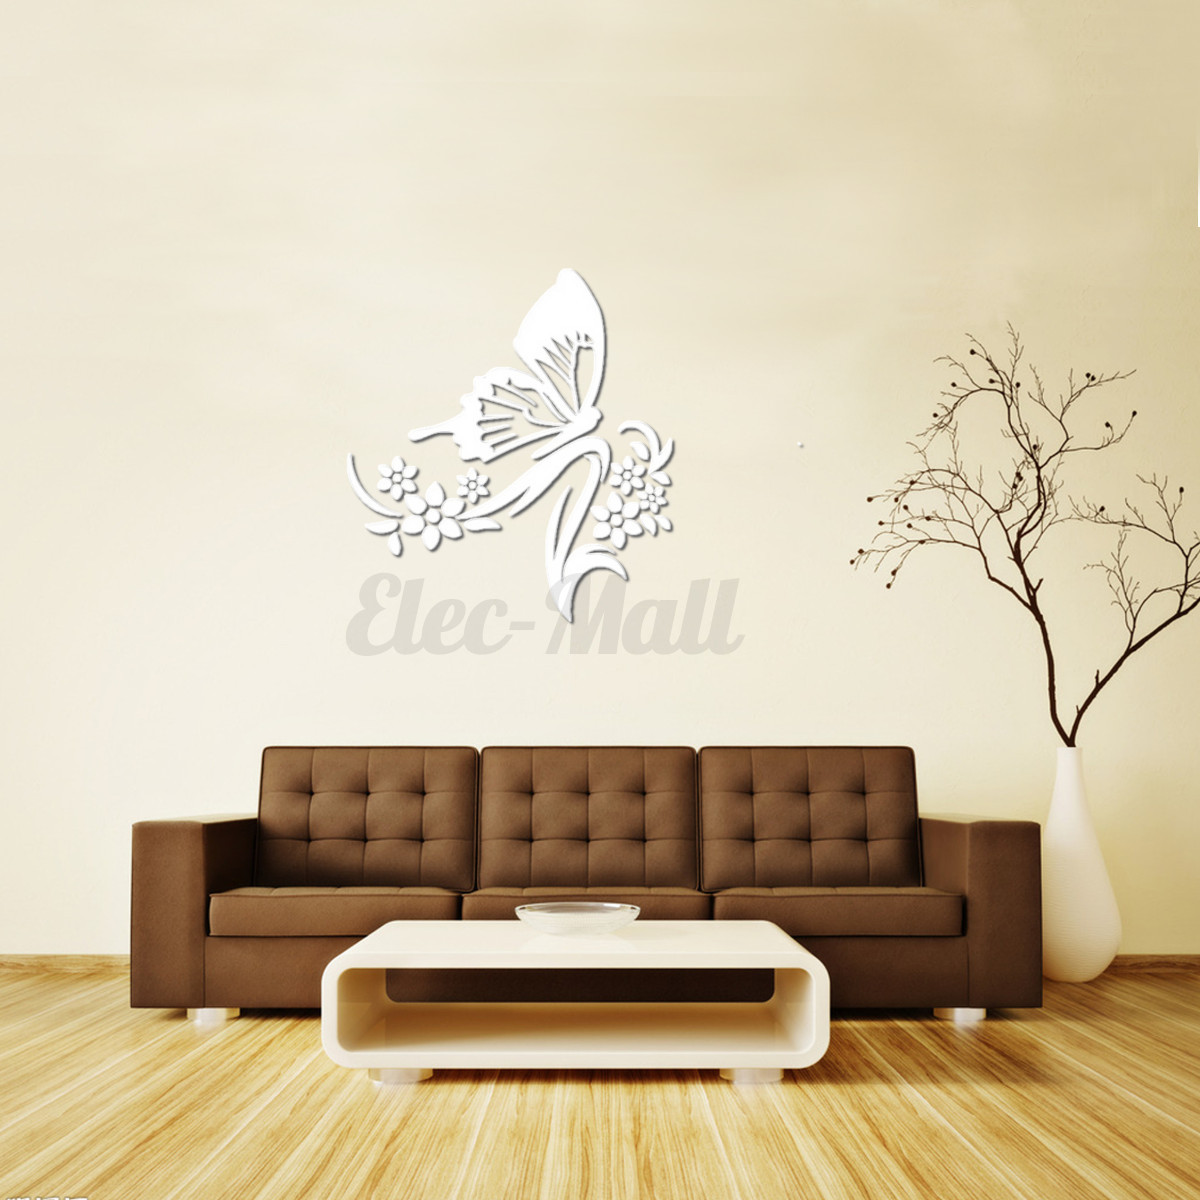 Removable DIY 3D Mirror Surface Wall Stickers Mural Art ...